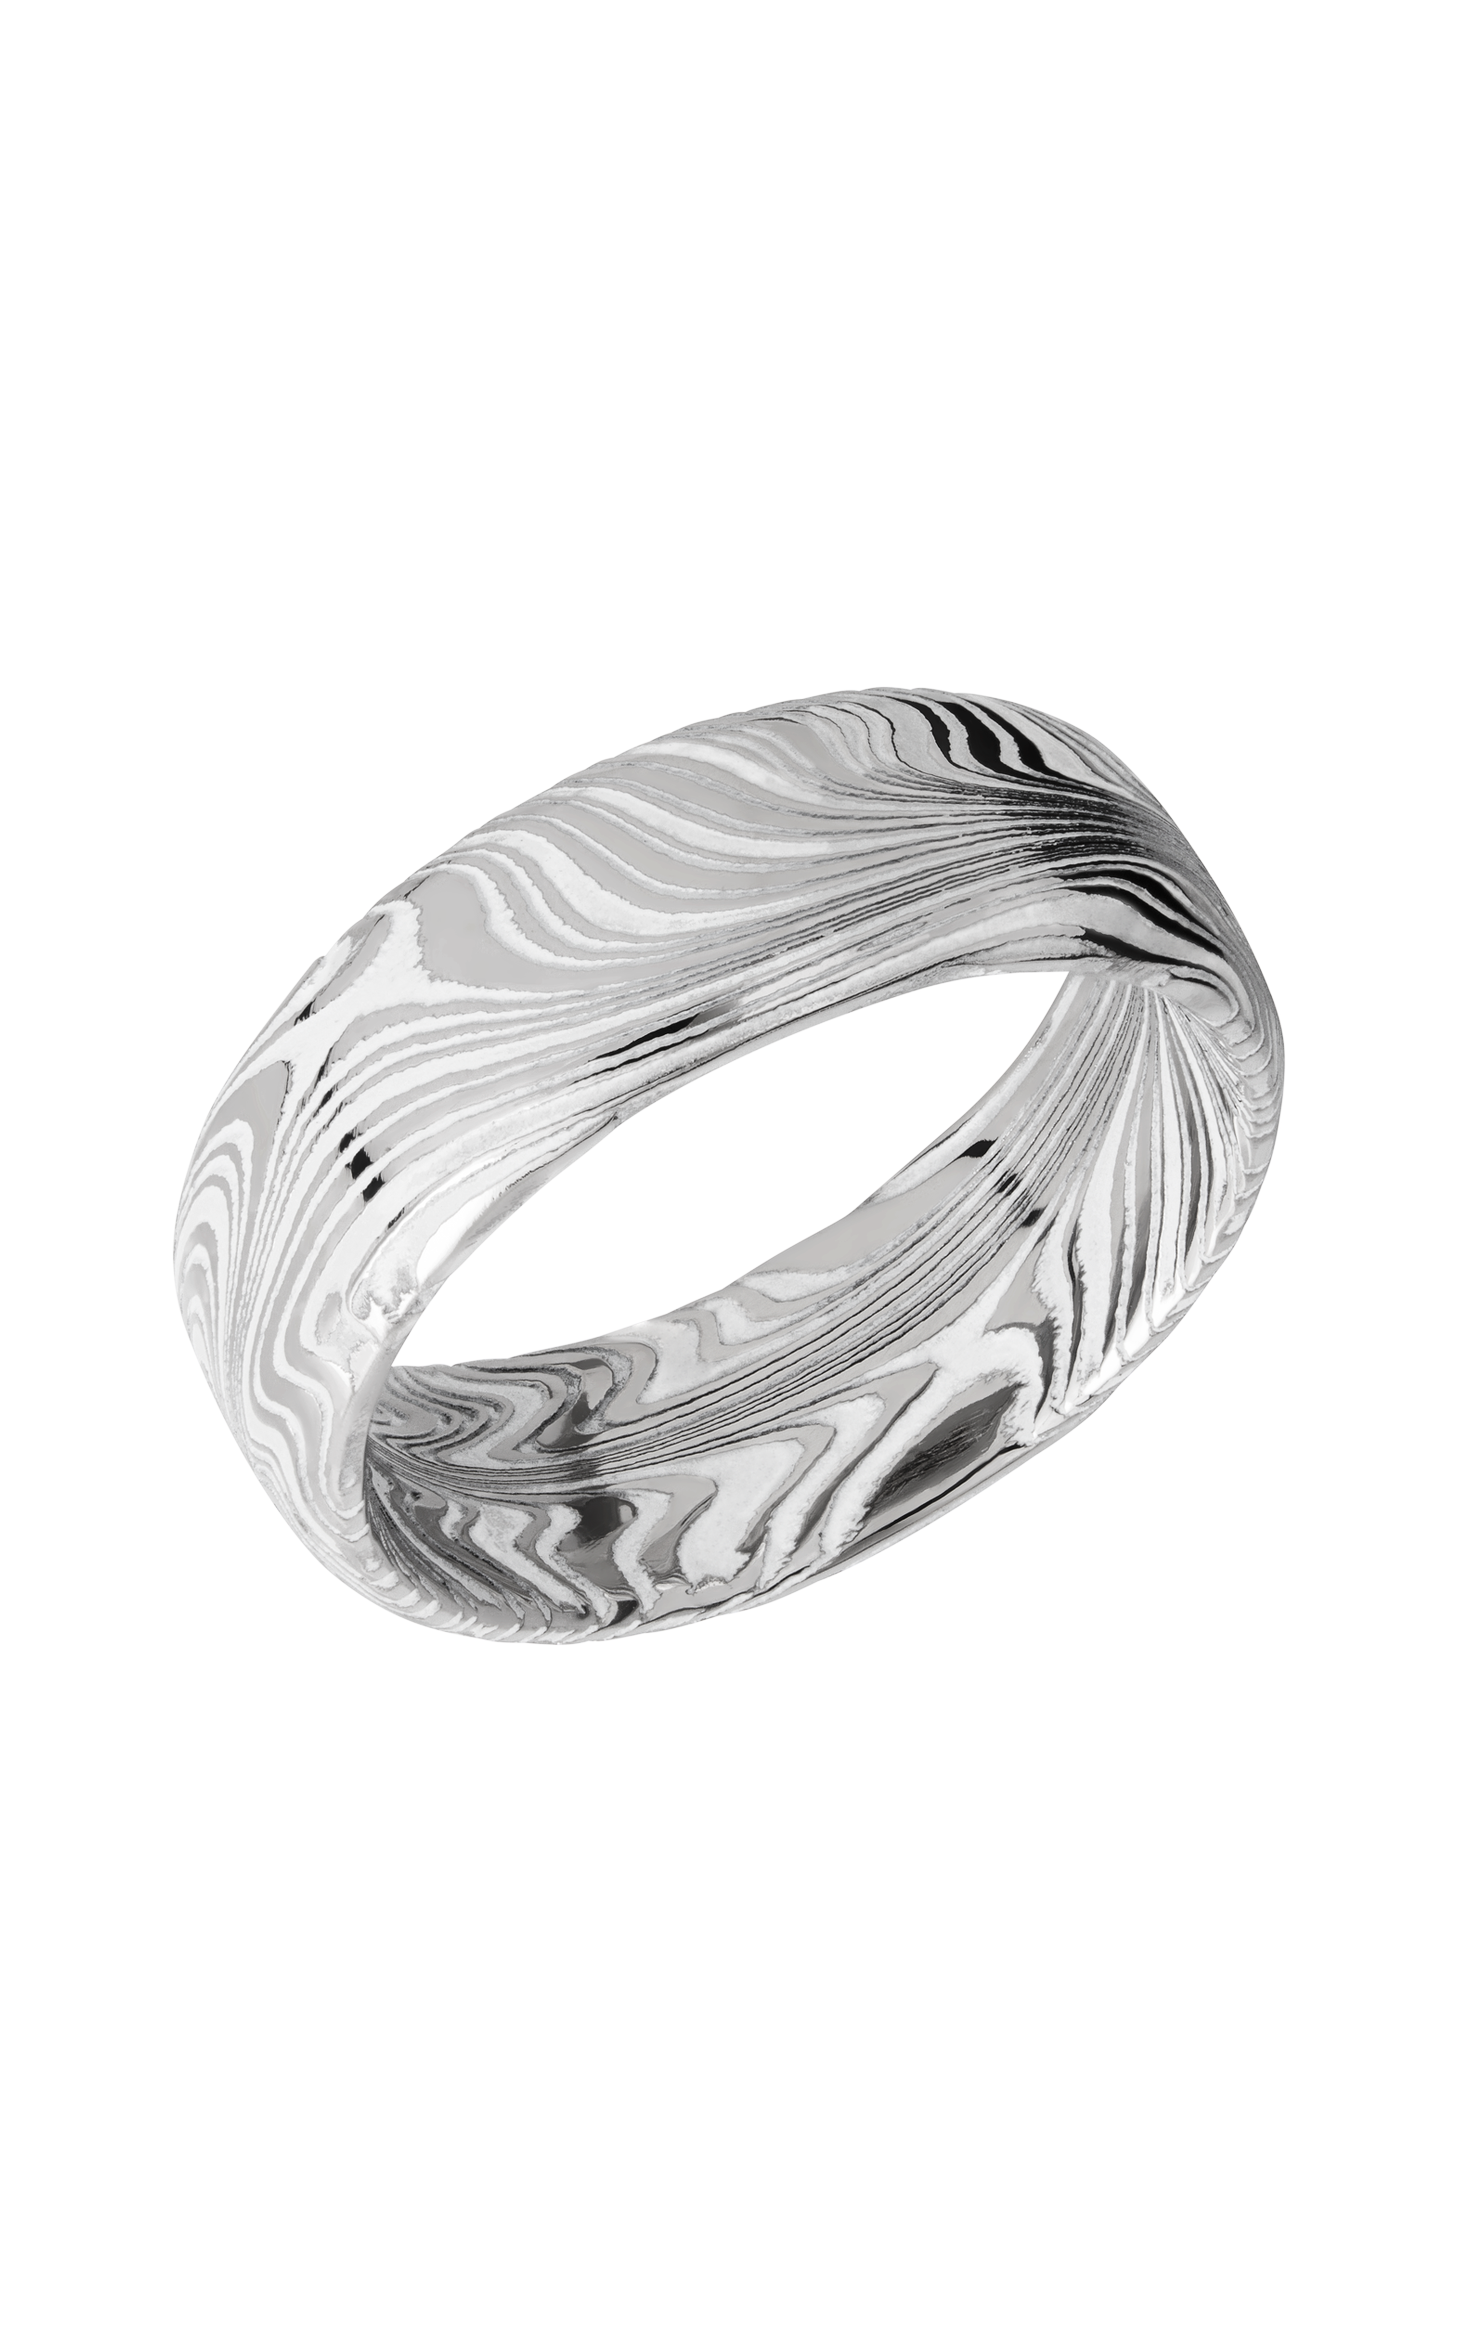 Lashbrook Damascus Steel D8DBMARBLE_WHITEALL product image